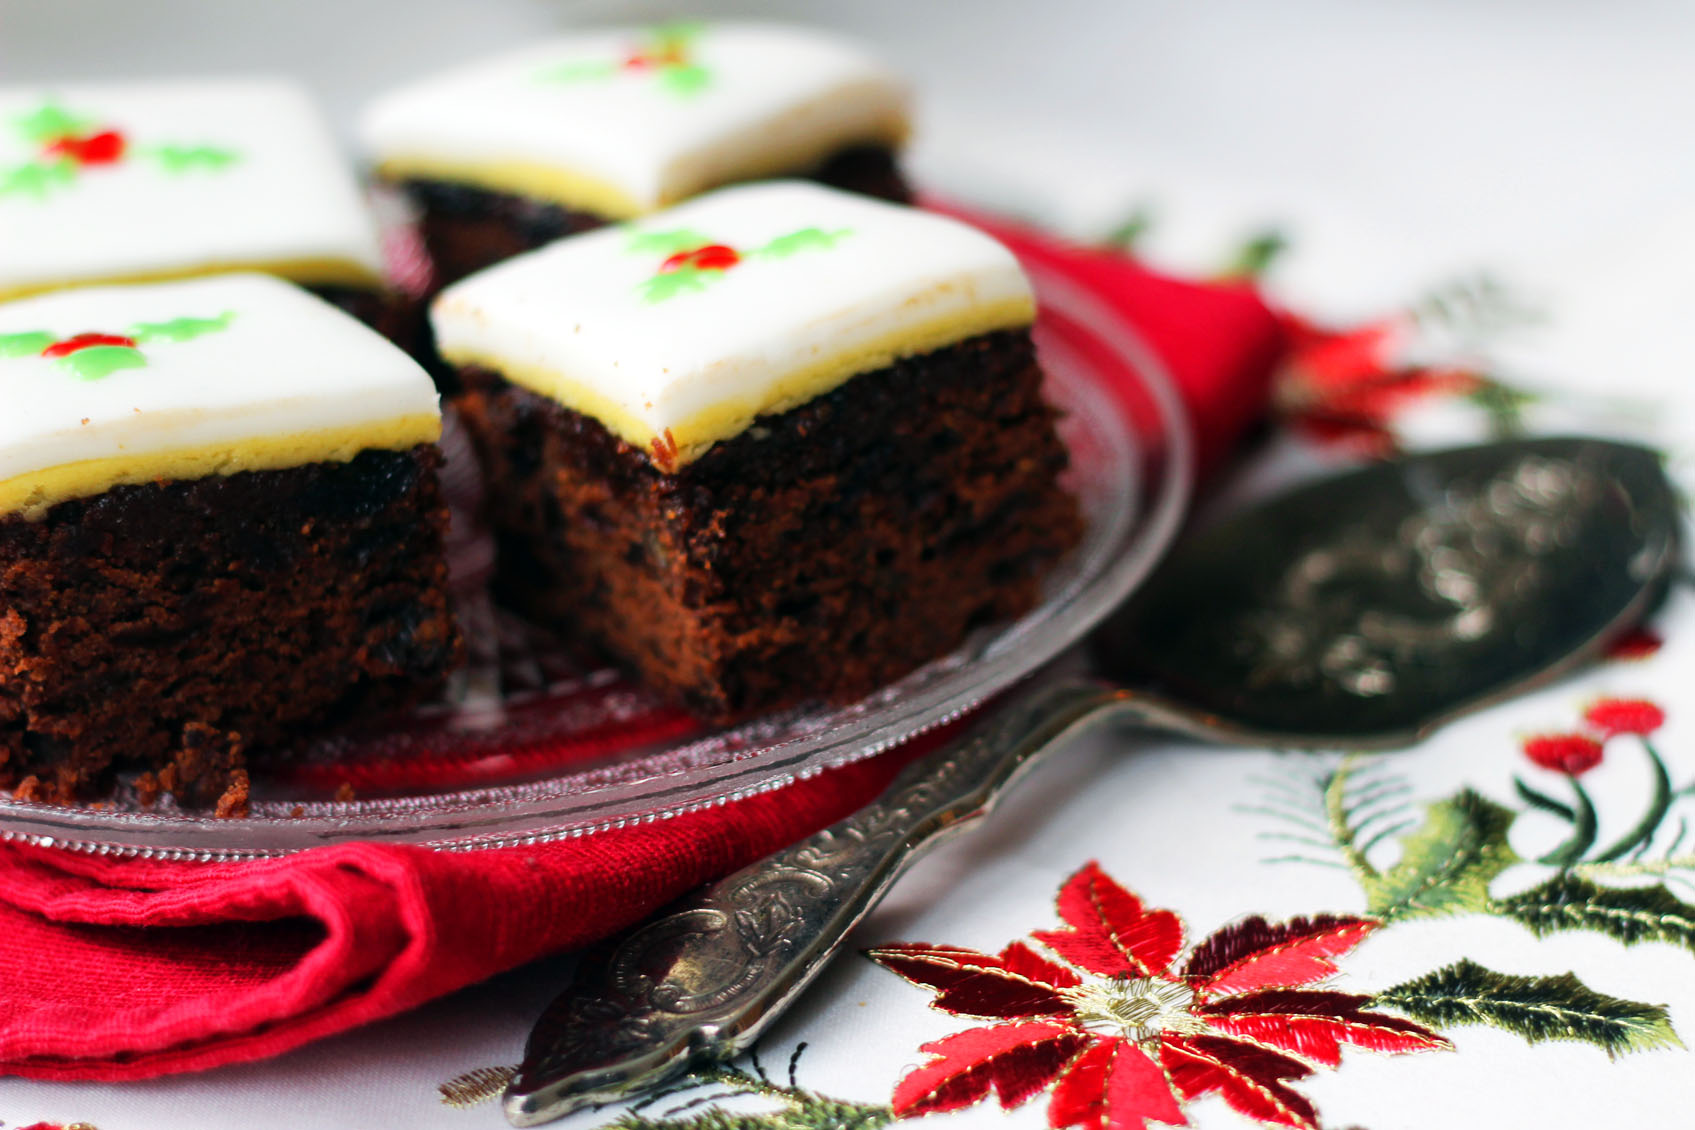 How to make christmas cake - I Ve Been Baking The Family Christmas Cake Now For The Best Part Of 6 Or 7 Years It S A Bit Of A Clich But When I Moved Out And Headed Off